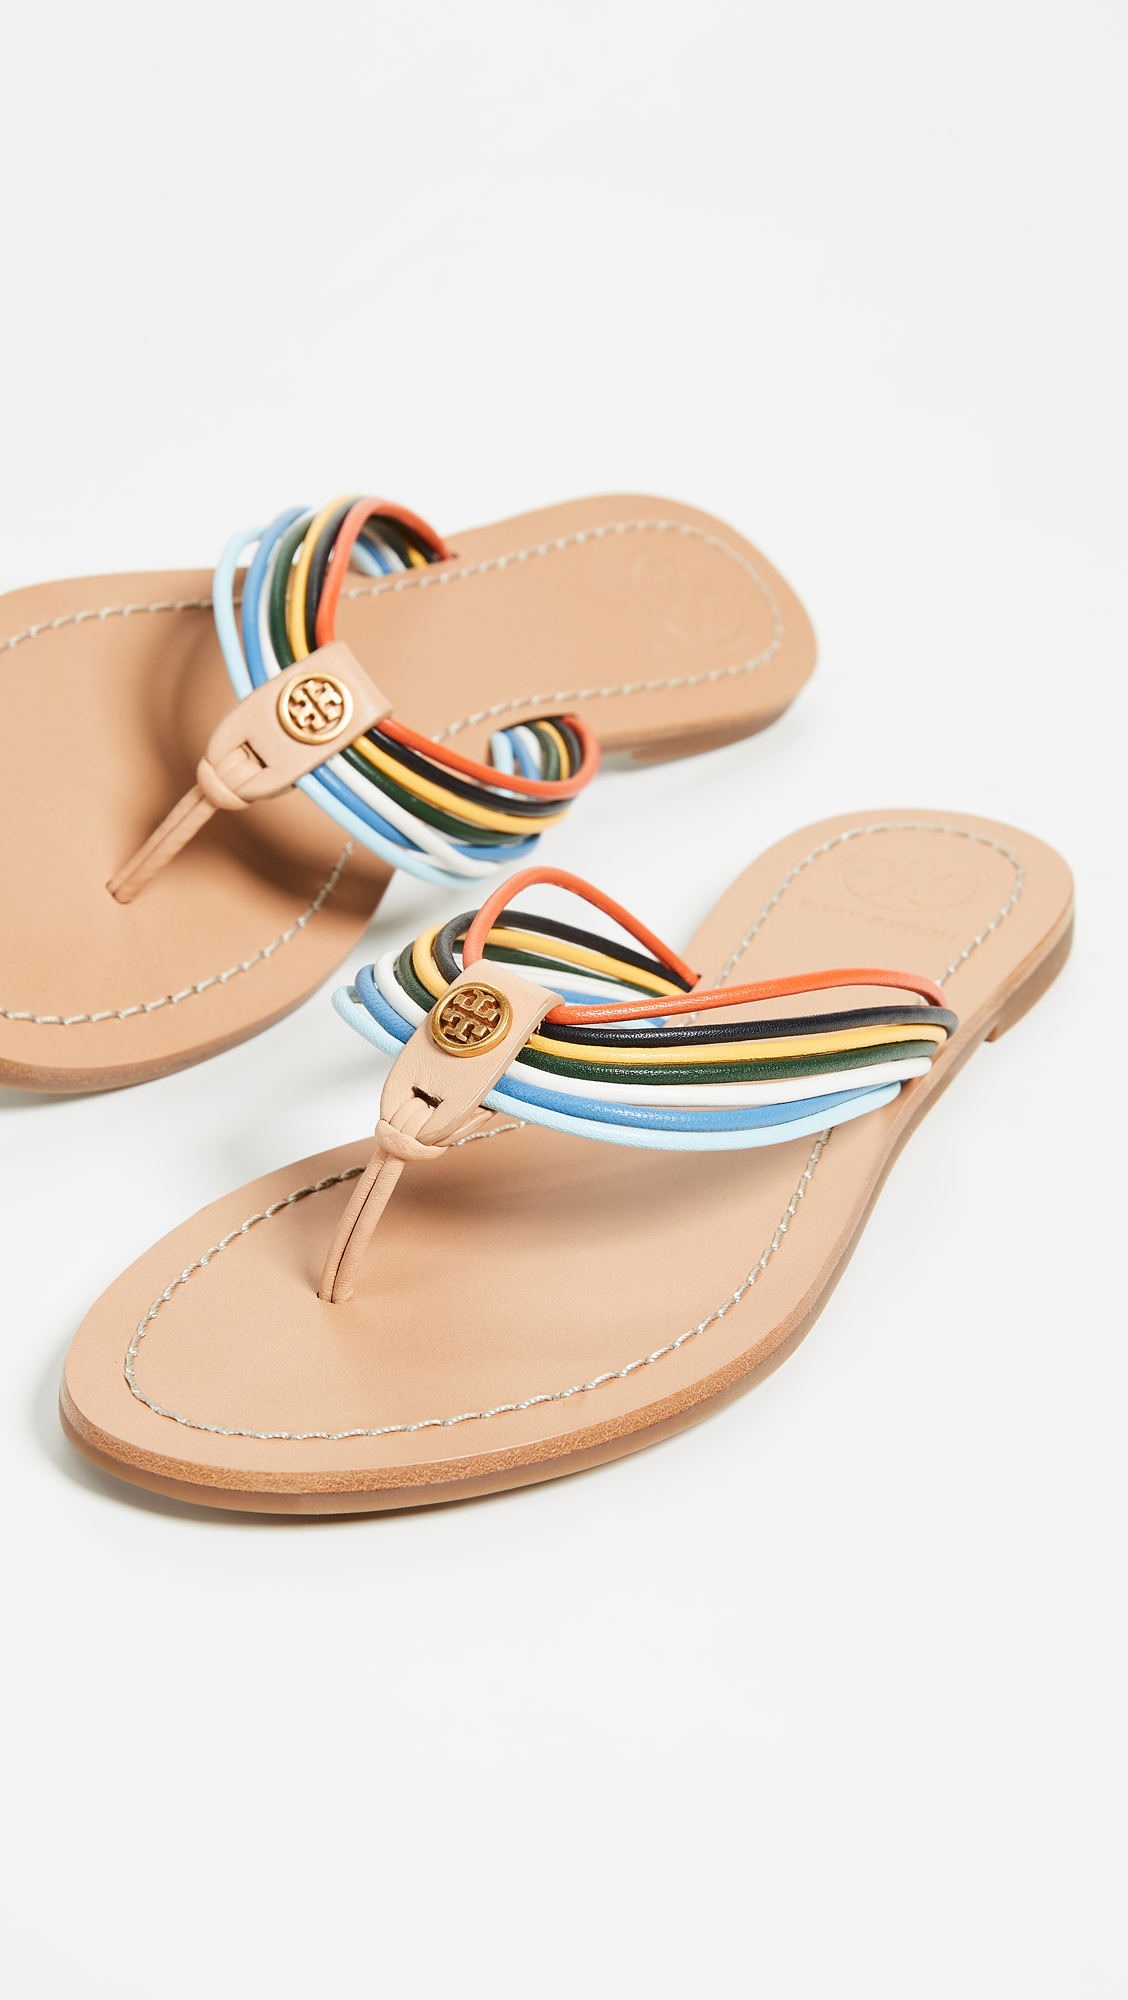 87eaf5737cd5 Tory Burch Sienna Thong Sandals